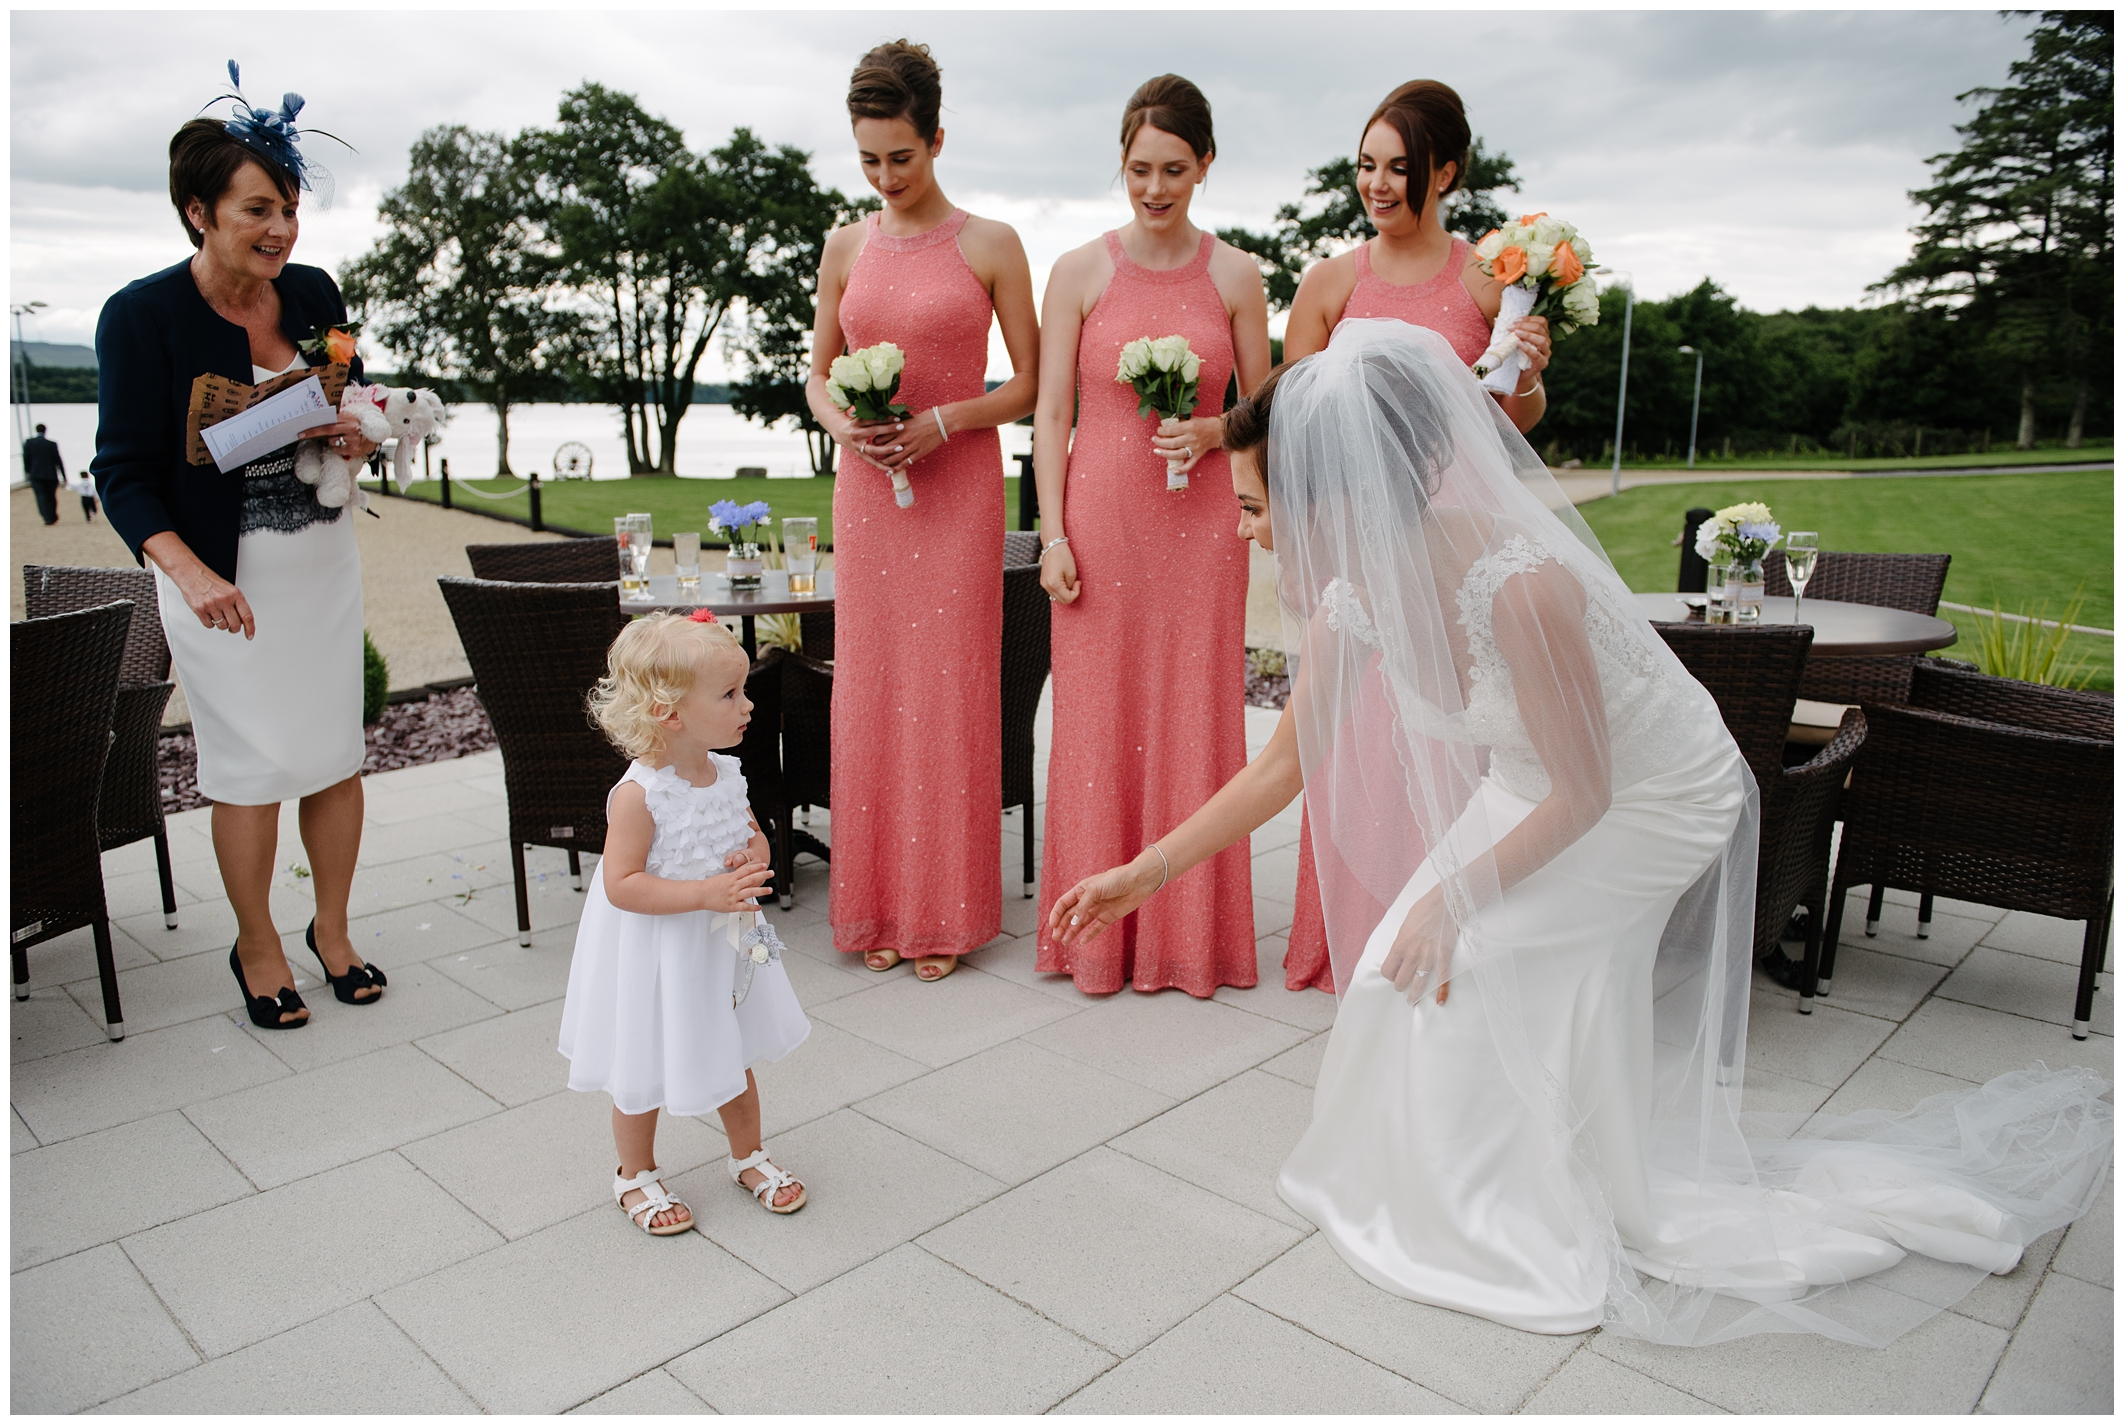 Lynsey_Andy_Rossharbour_Fermanagh_wedding_jude_browne_photography_0080.jpg